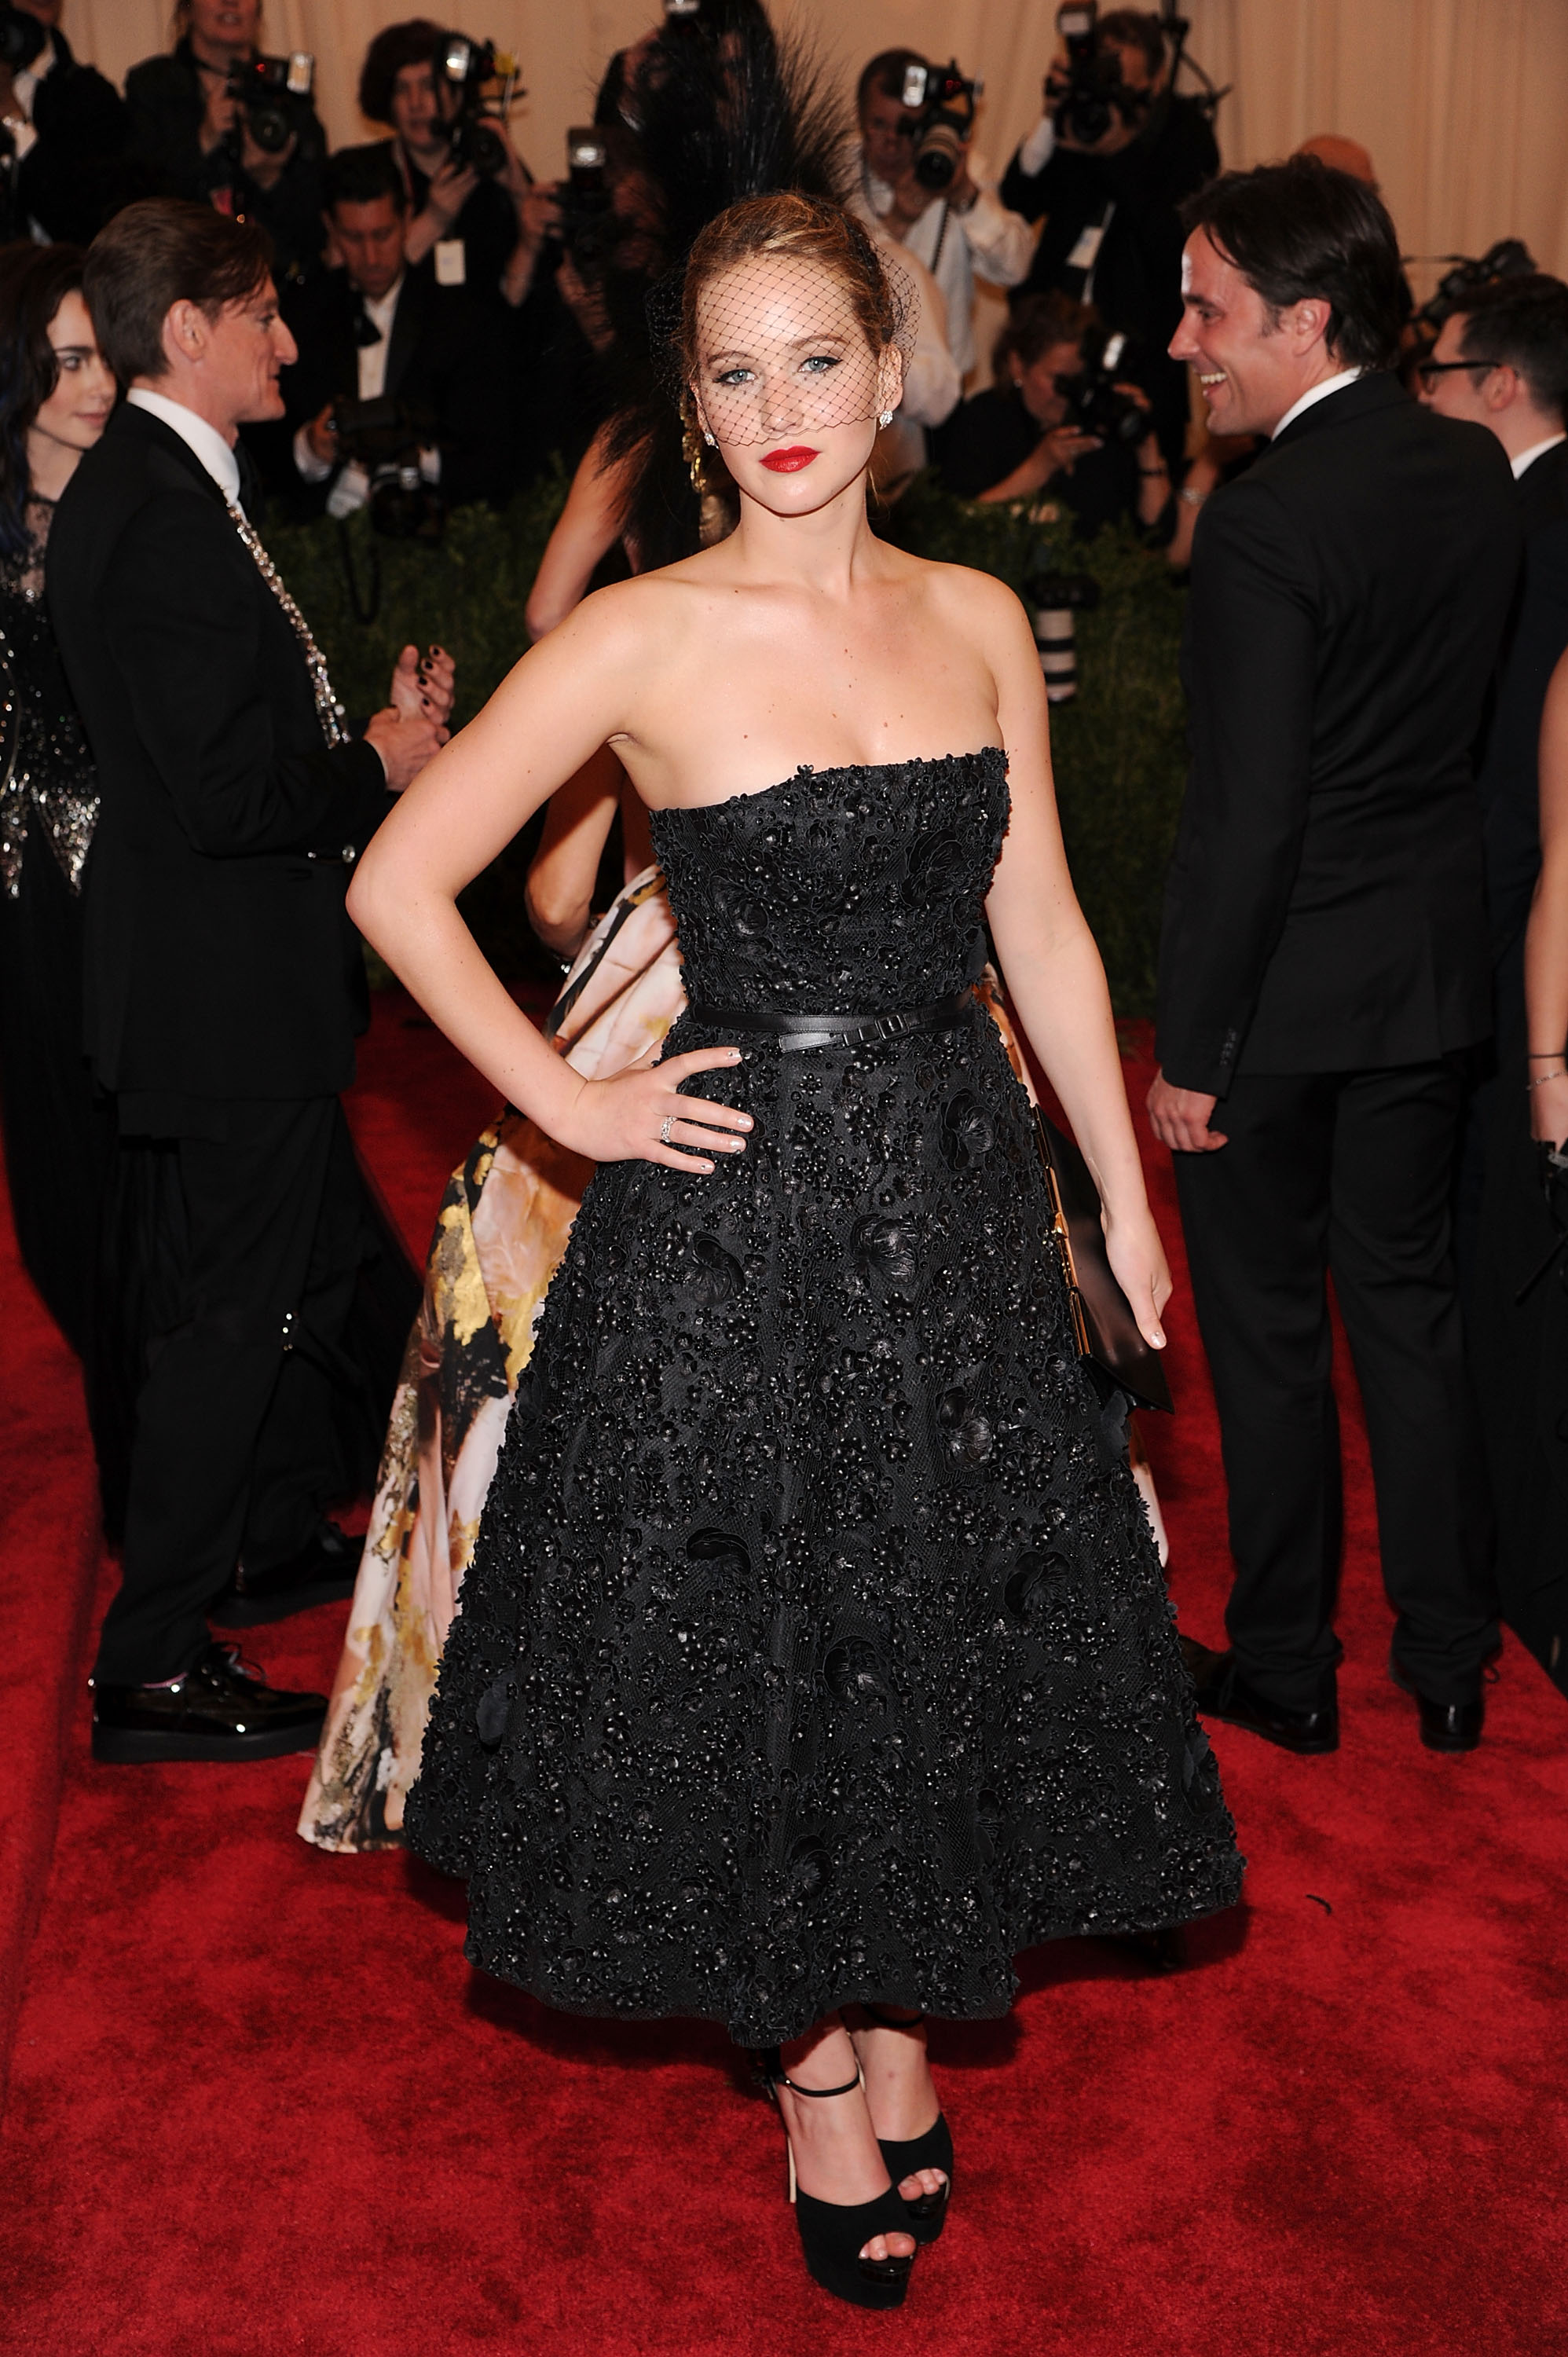 Jennifer Lawrence attends the Costume Institute Gala for the PUNK: Chaos to Couture exhibition at the Metropolitan Museum of Art on May 6, 2013 in New York City.